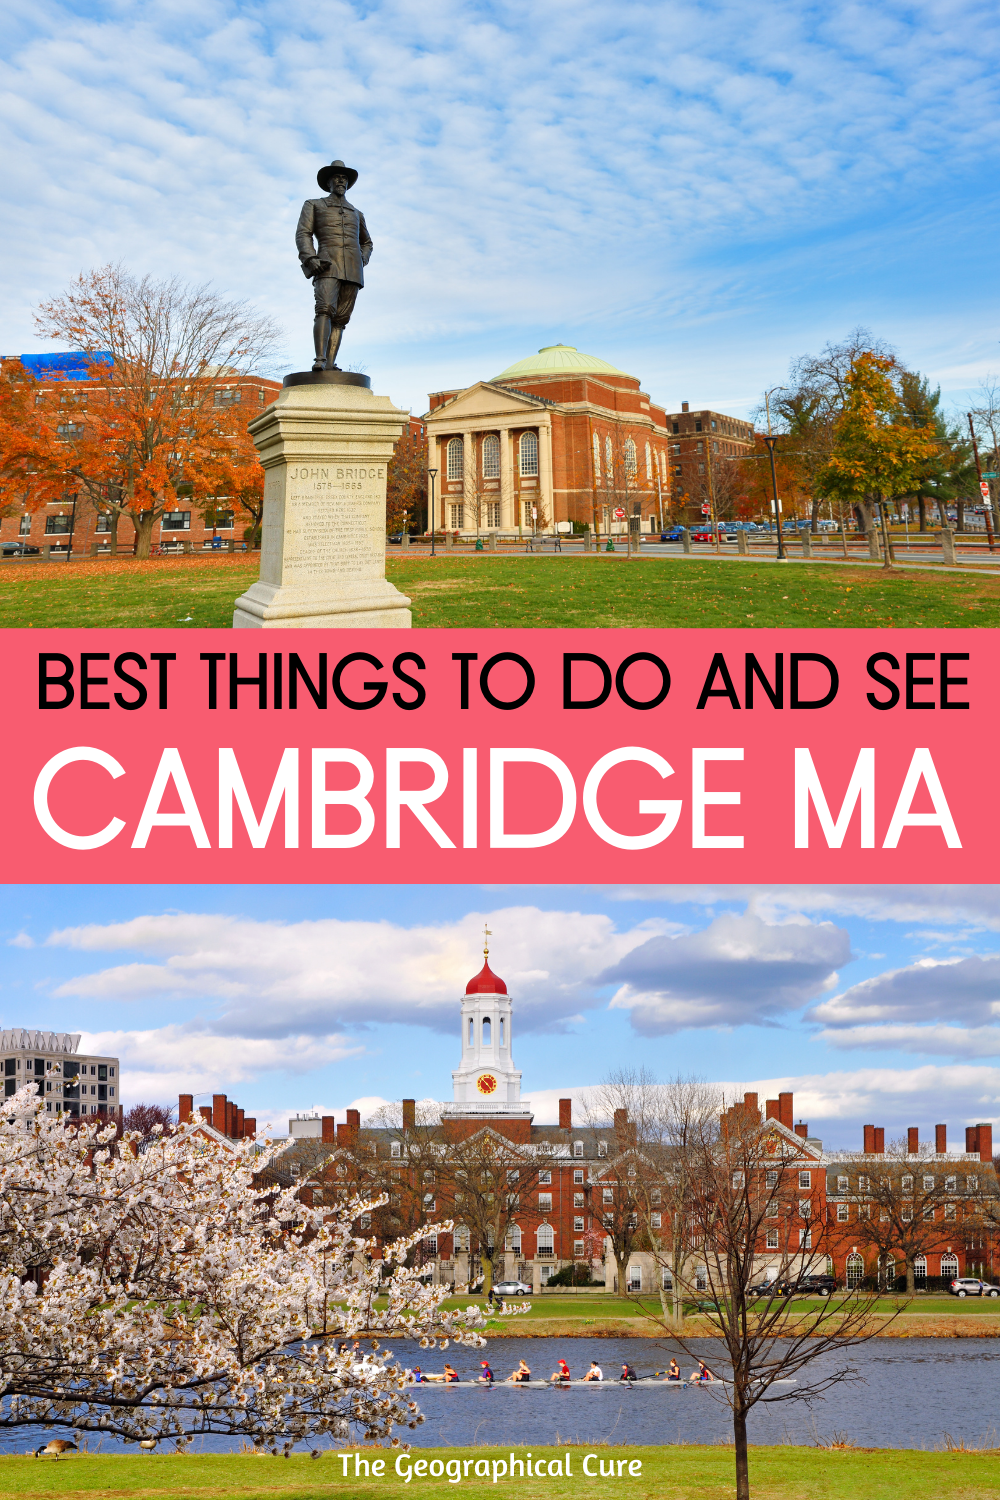 Best Things To Do and See in Cambridge Massachusetts